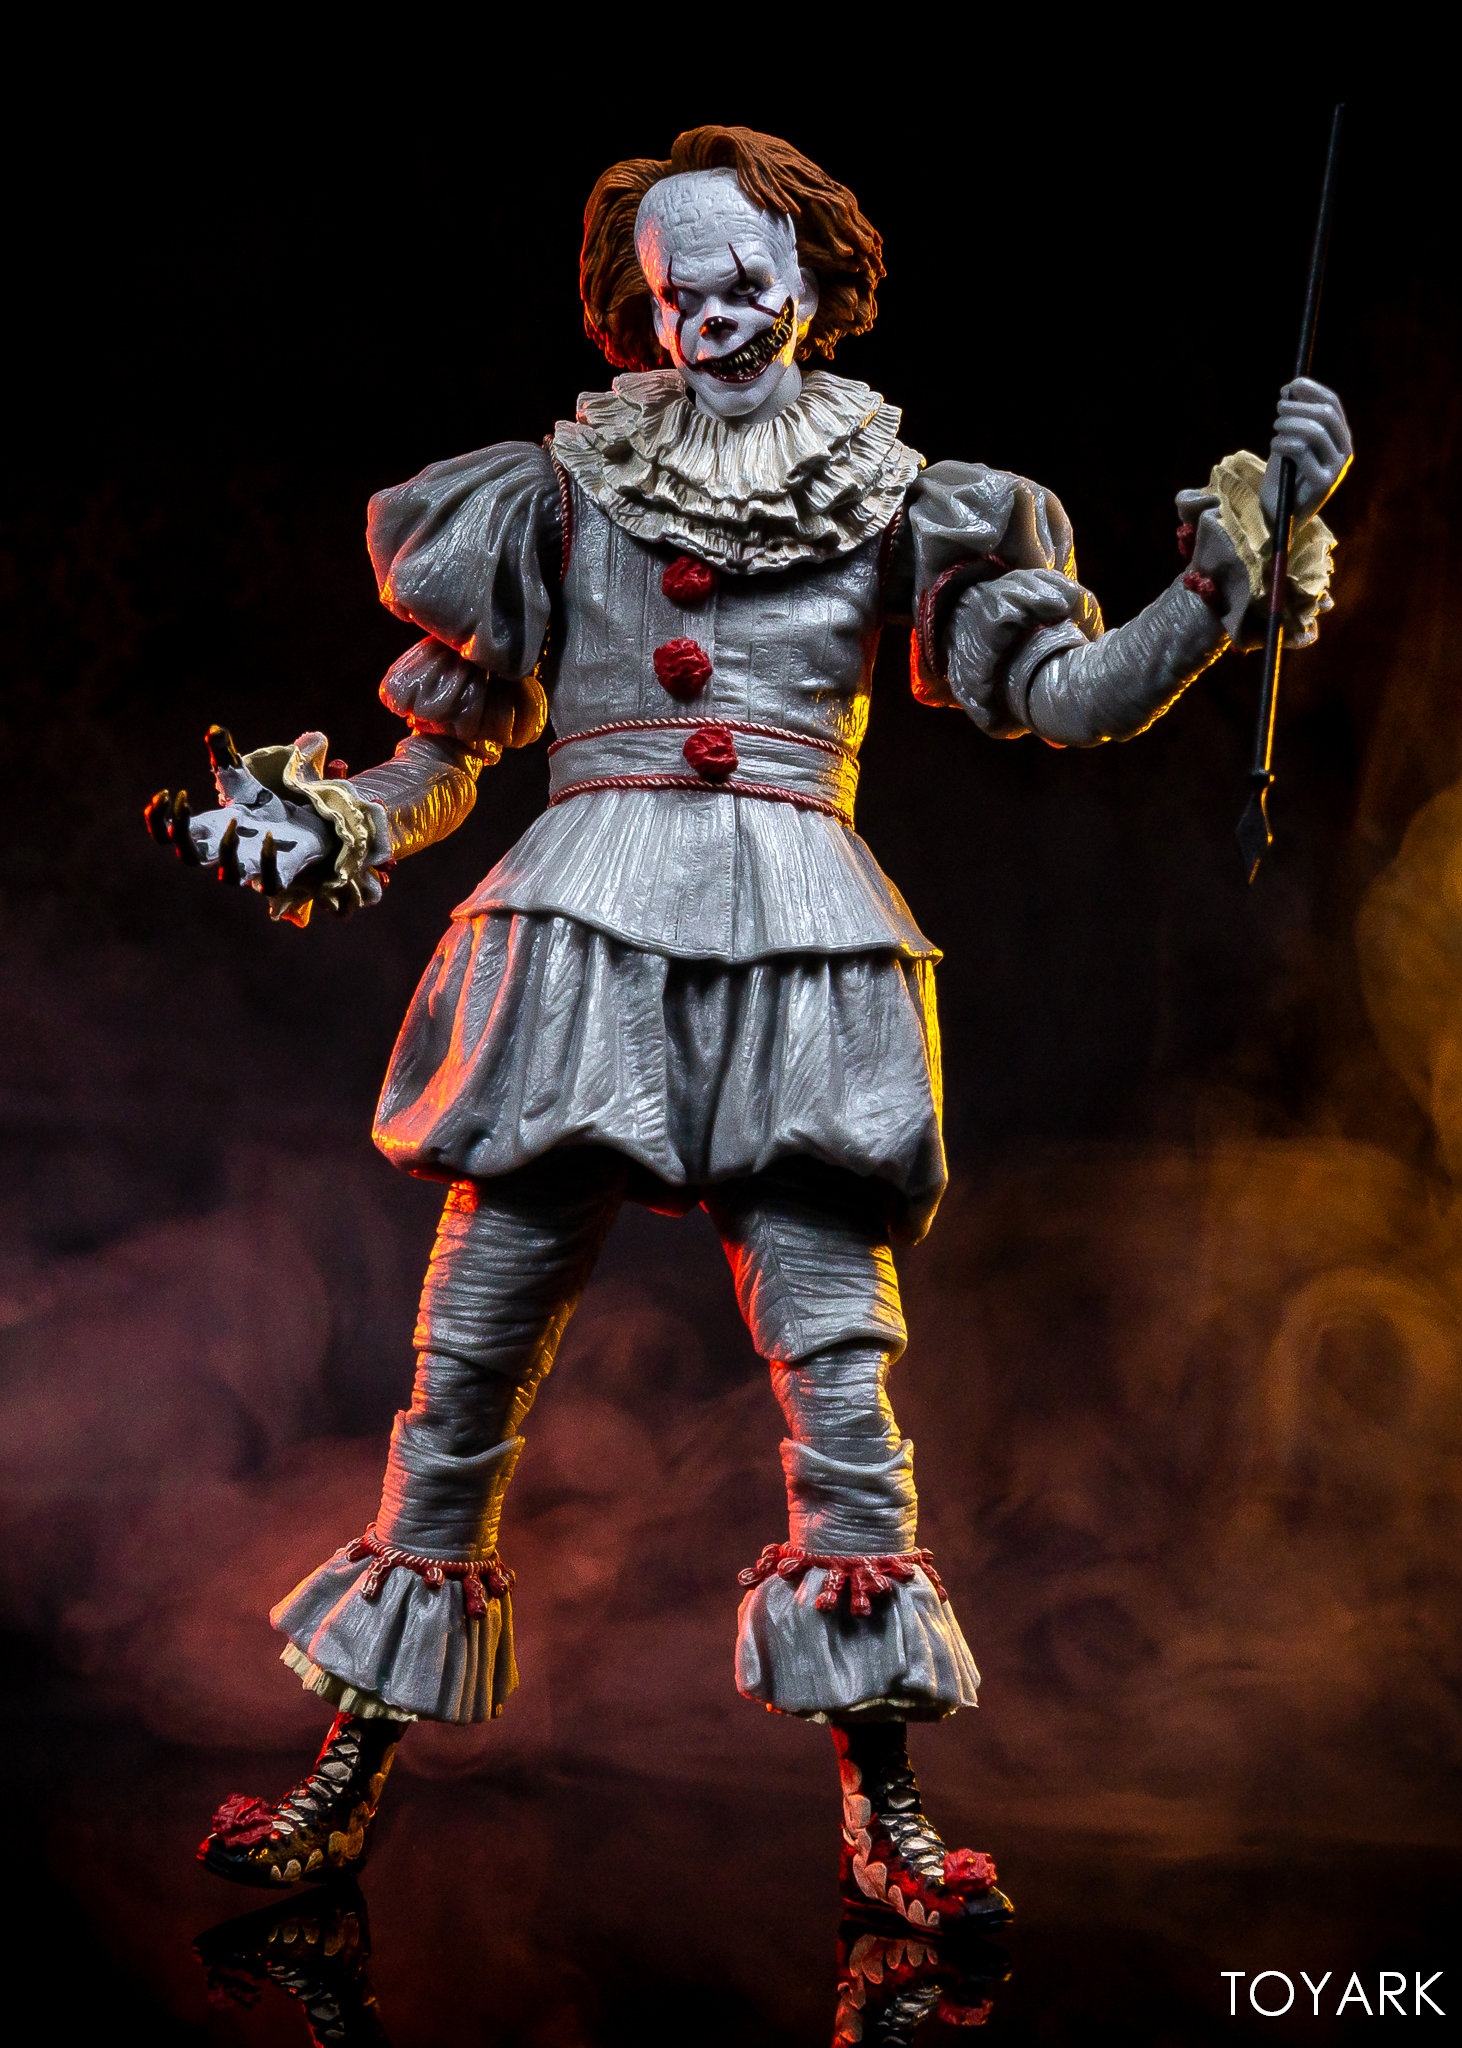 https://news.toyark.com/wp-content/uploads/sites/4/2019/03/Well-House-Pennywise-Gallery-031.jpg